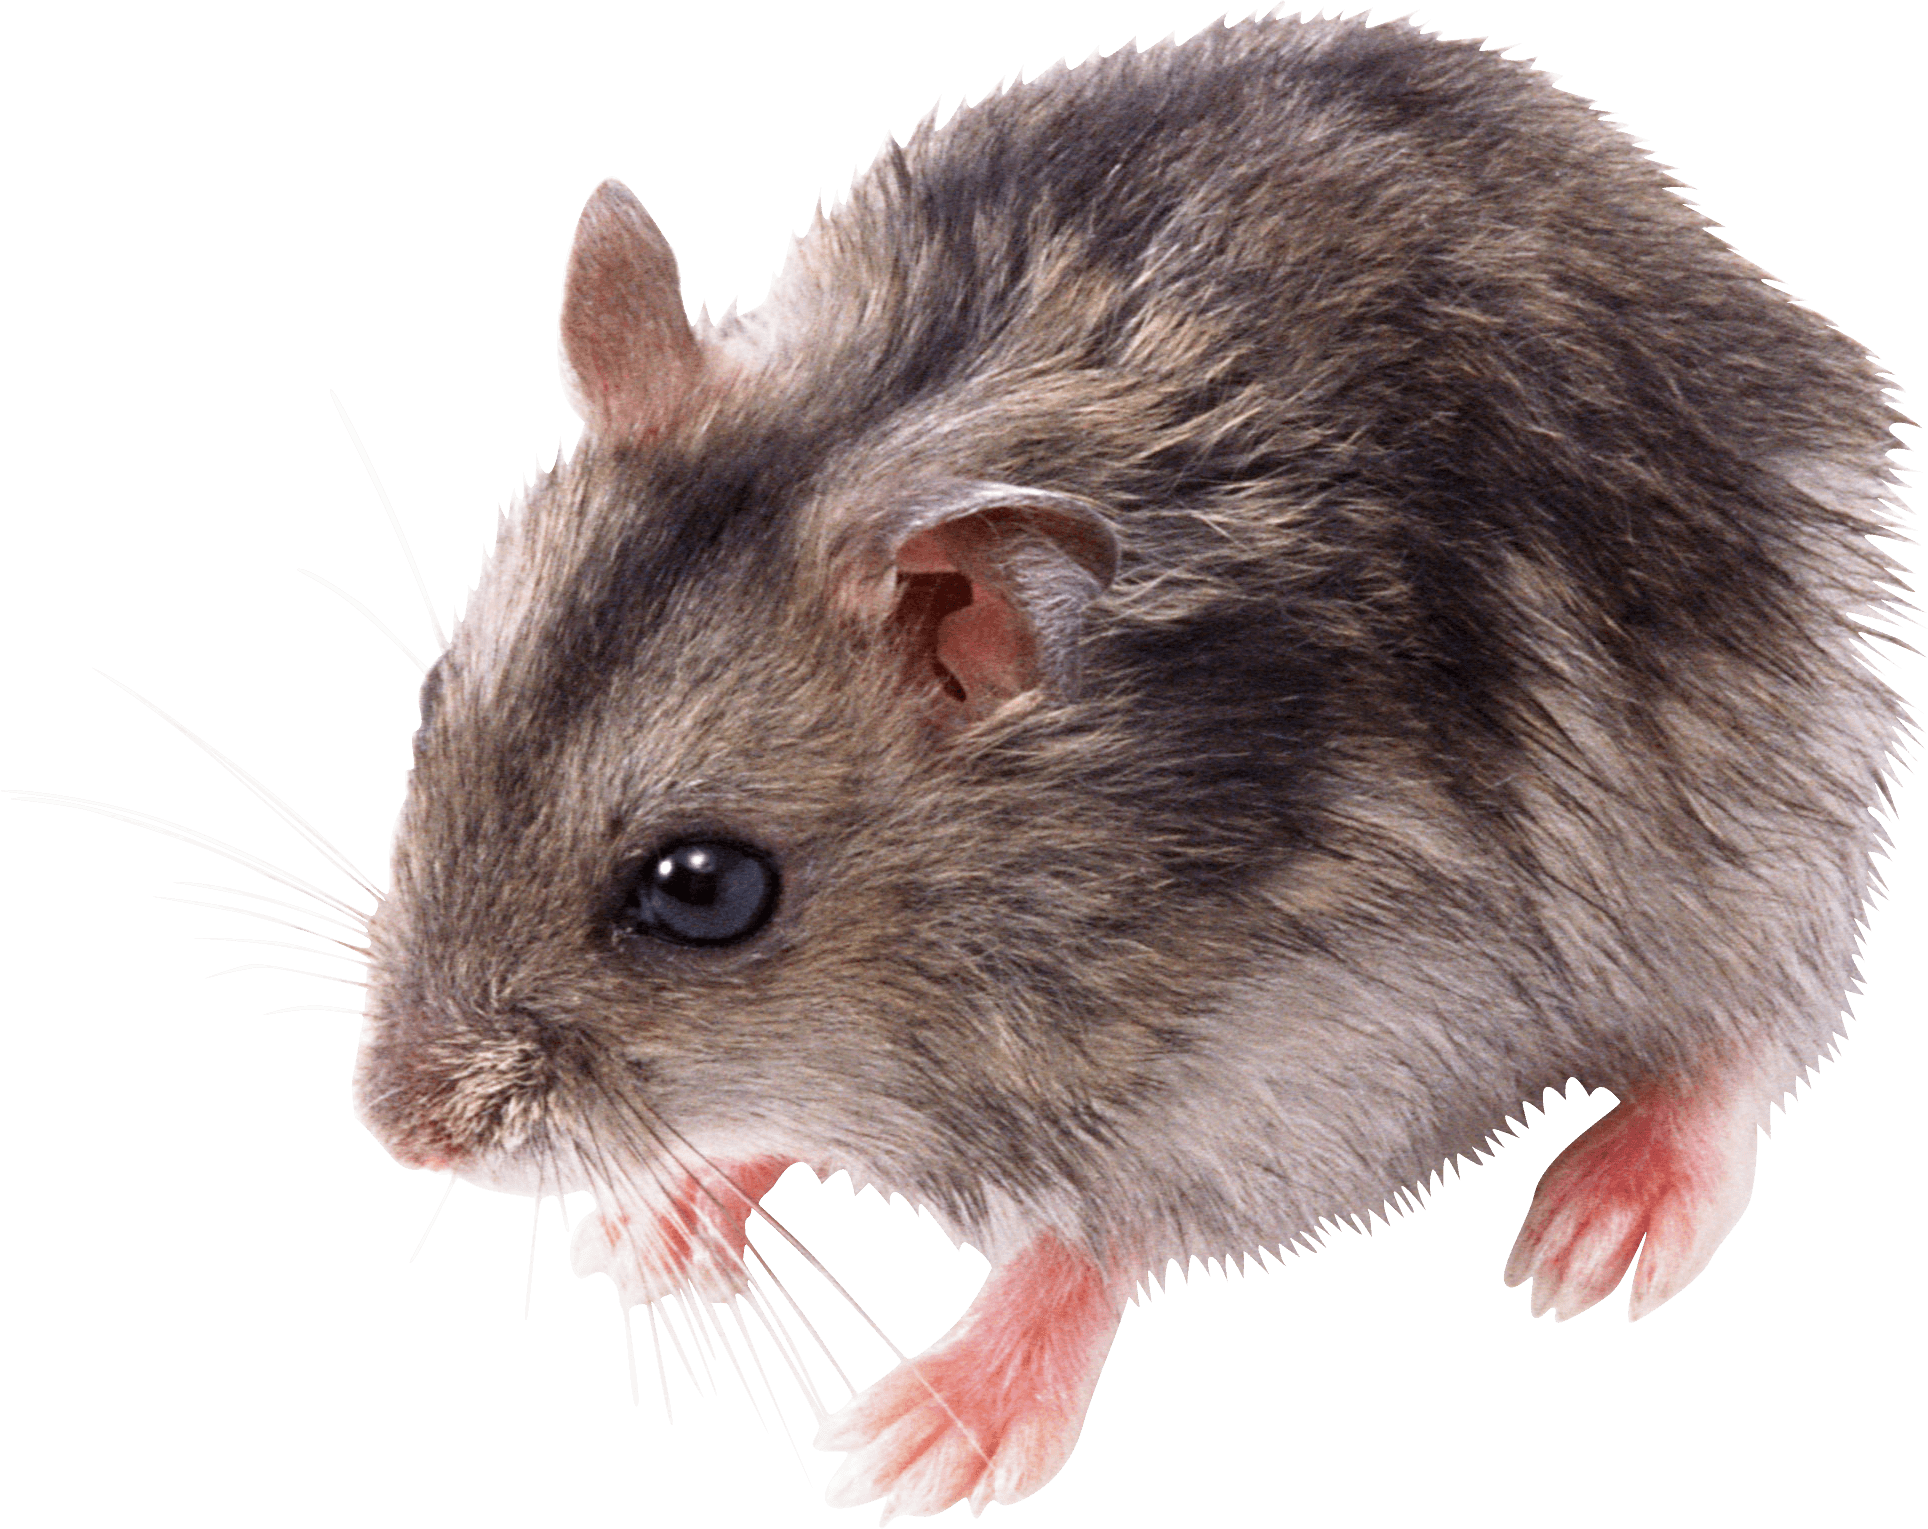 Cute small mouse png. Hamster clipart transparent background